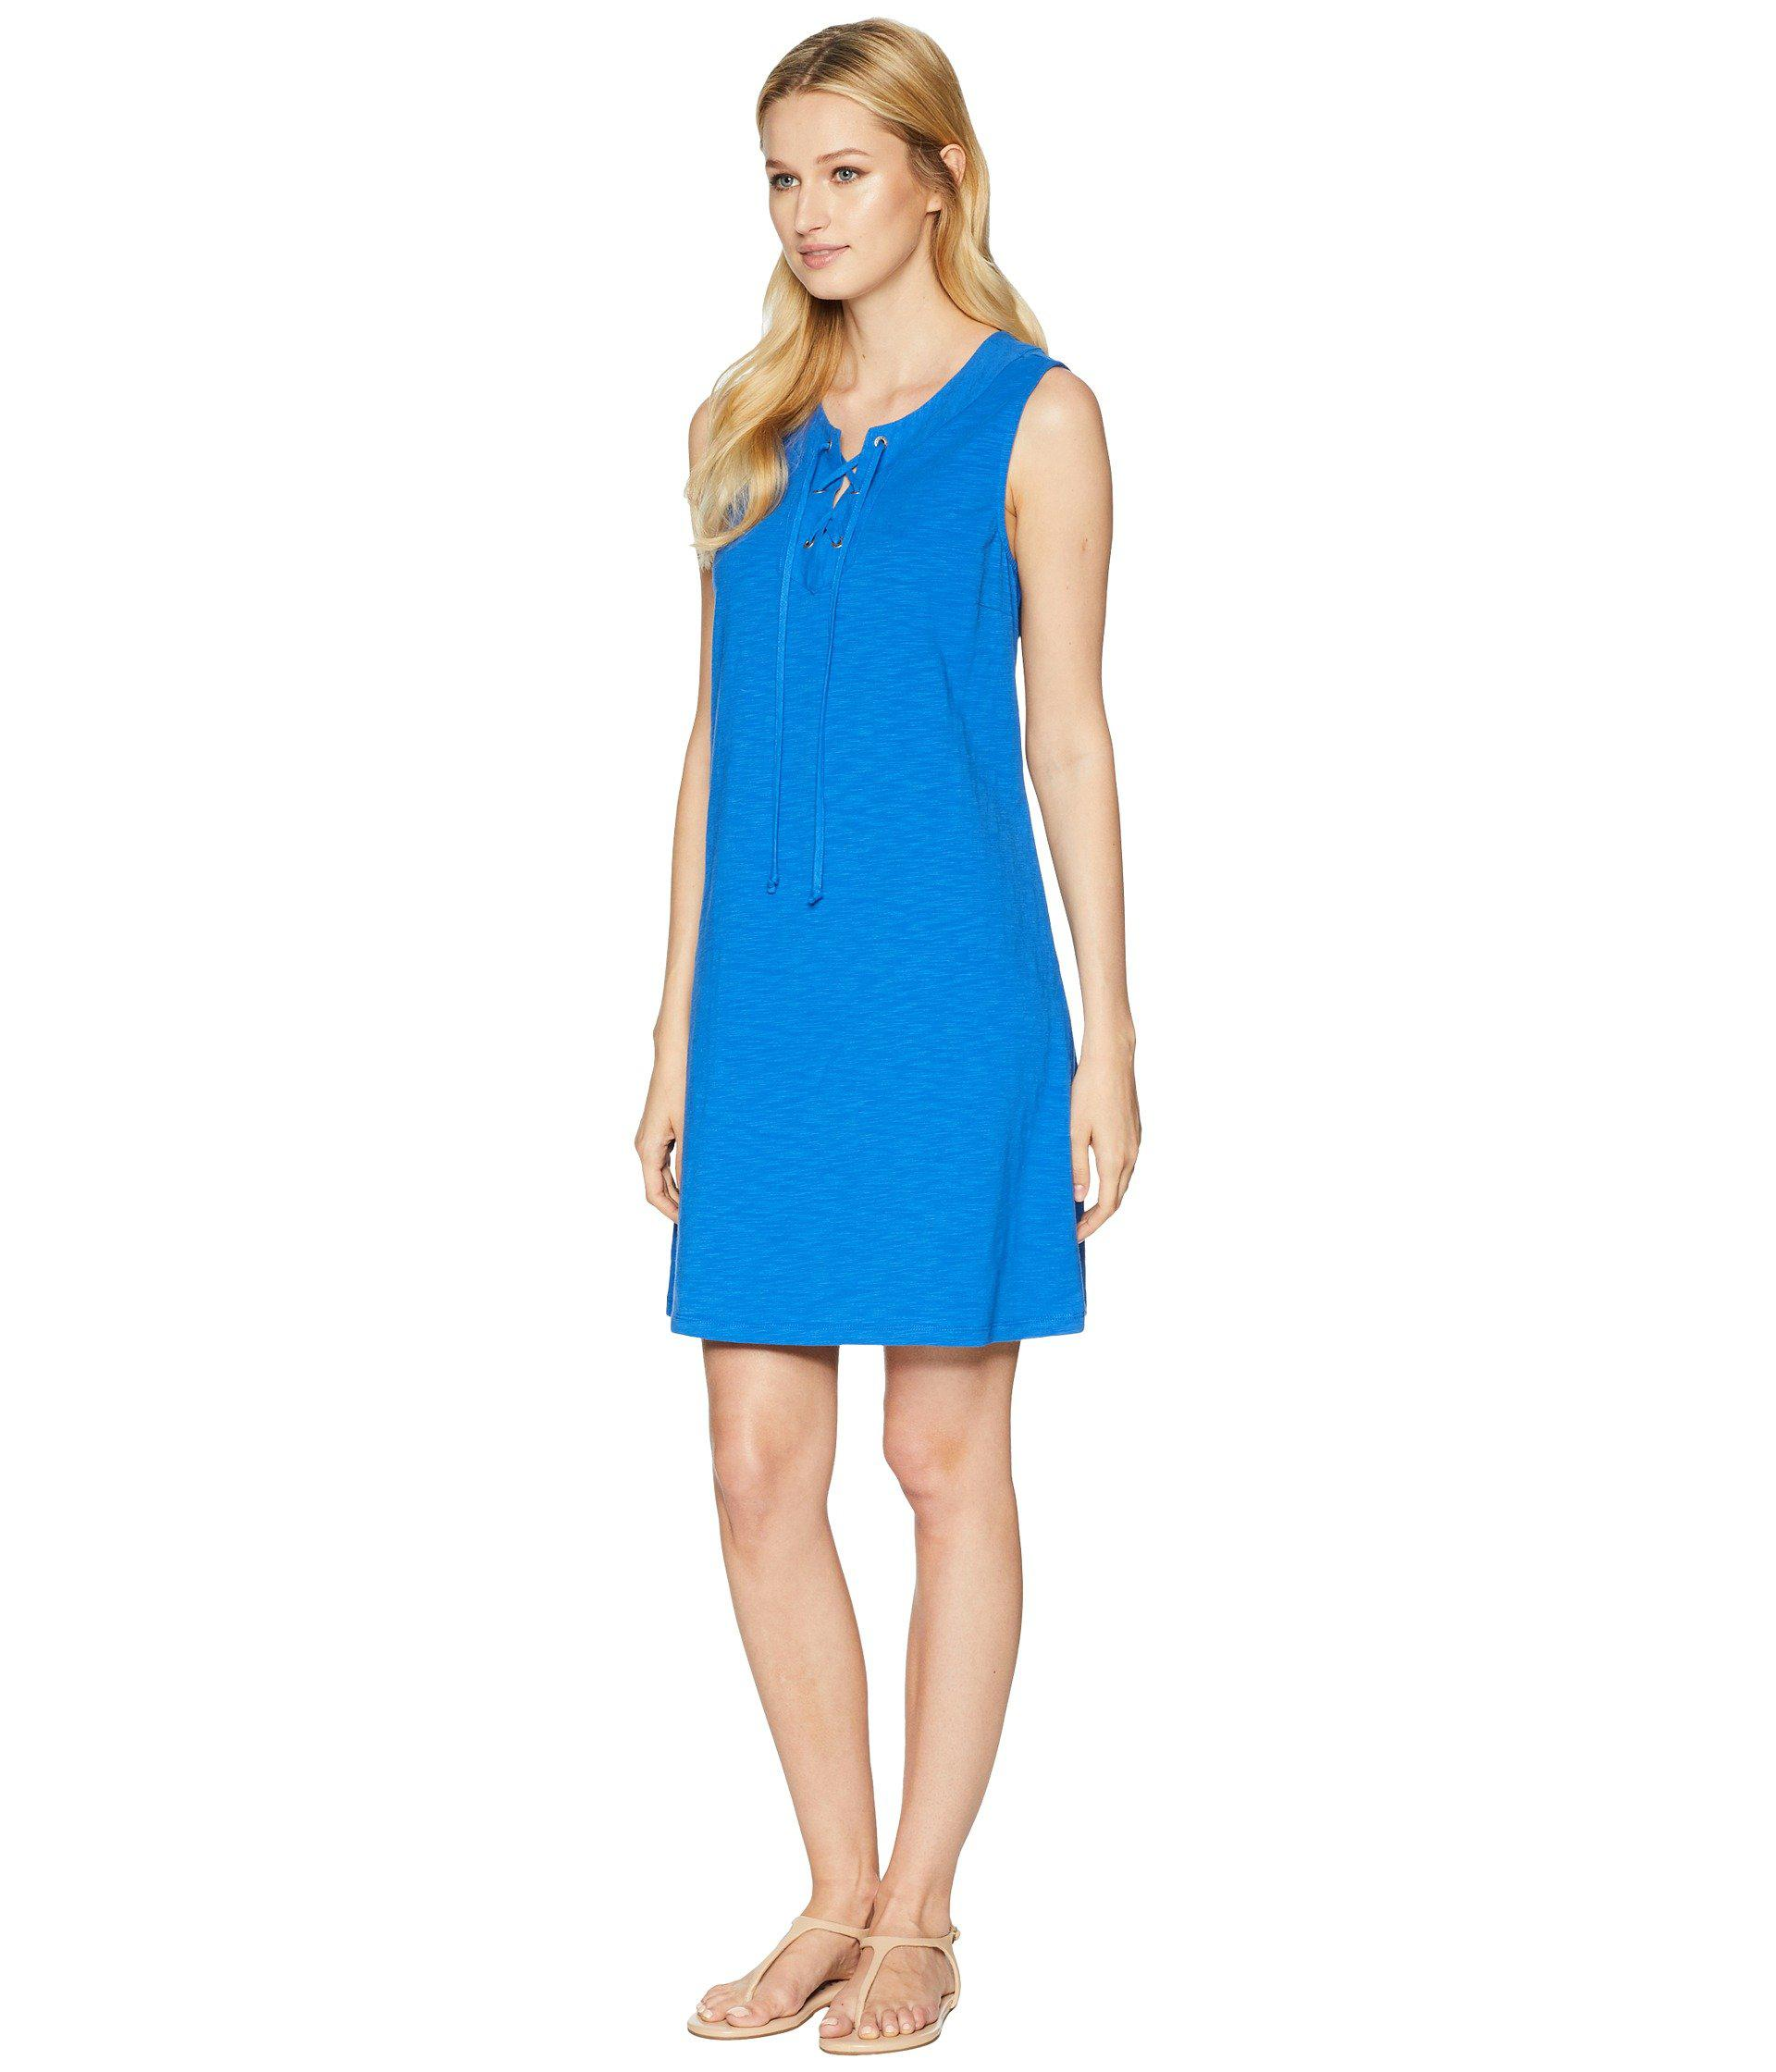 eab6706585 Lyst - Tommy Bahama Jer-sea Sleeveless Tie Front Dress in Blue - Save 17%